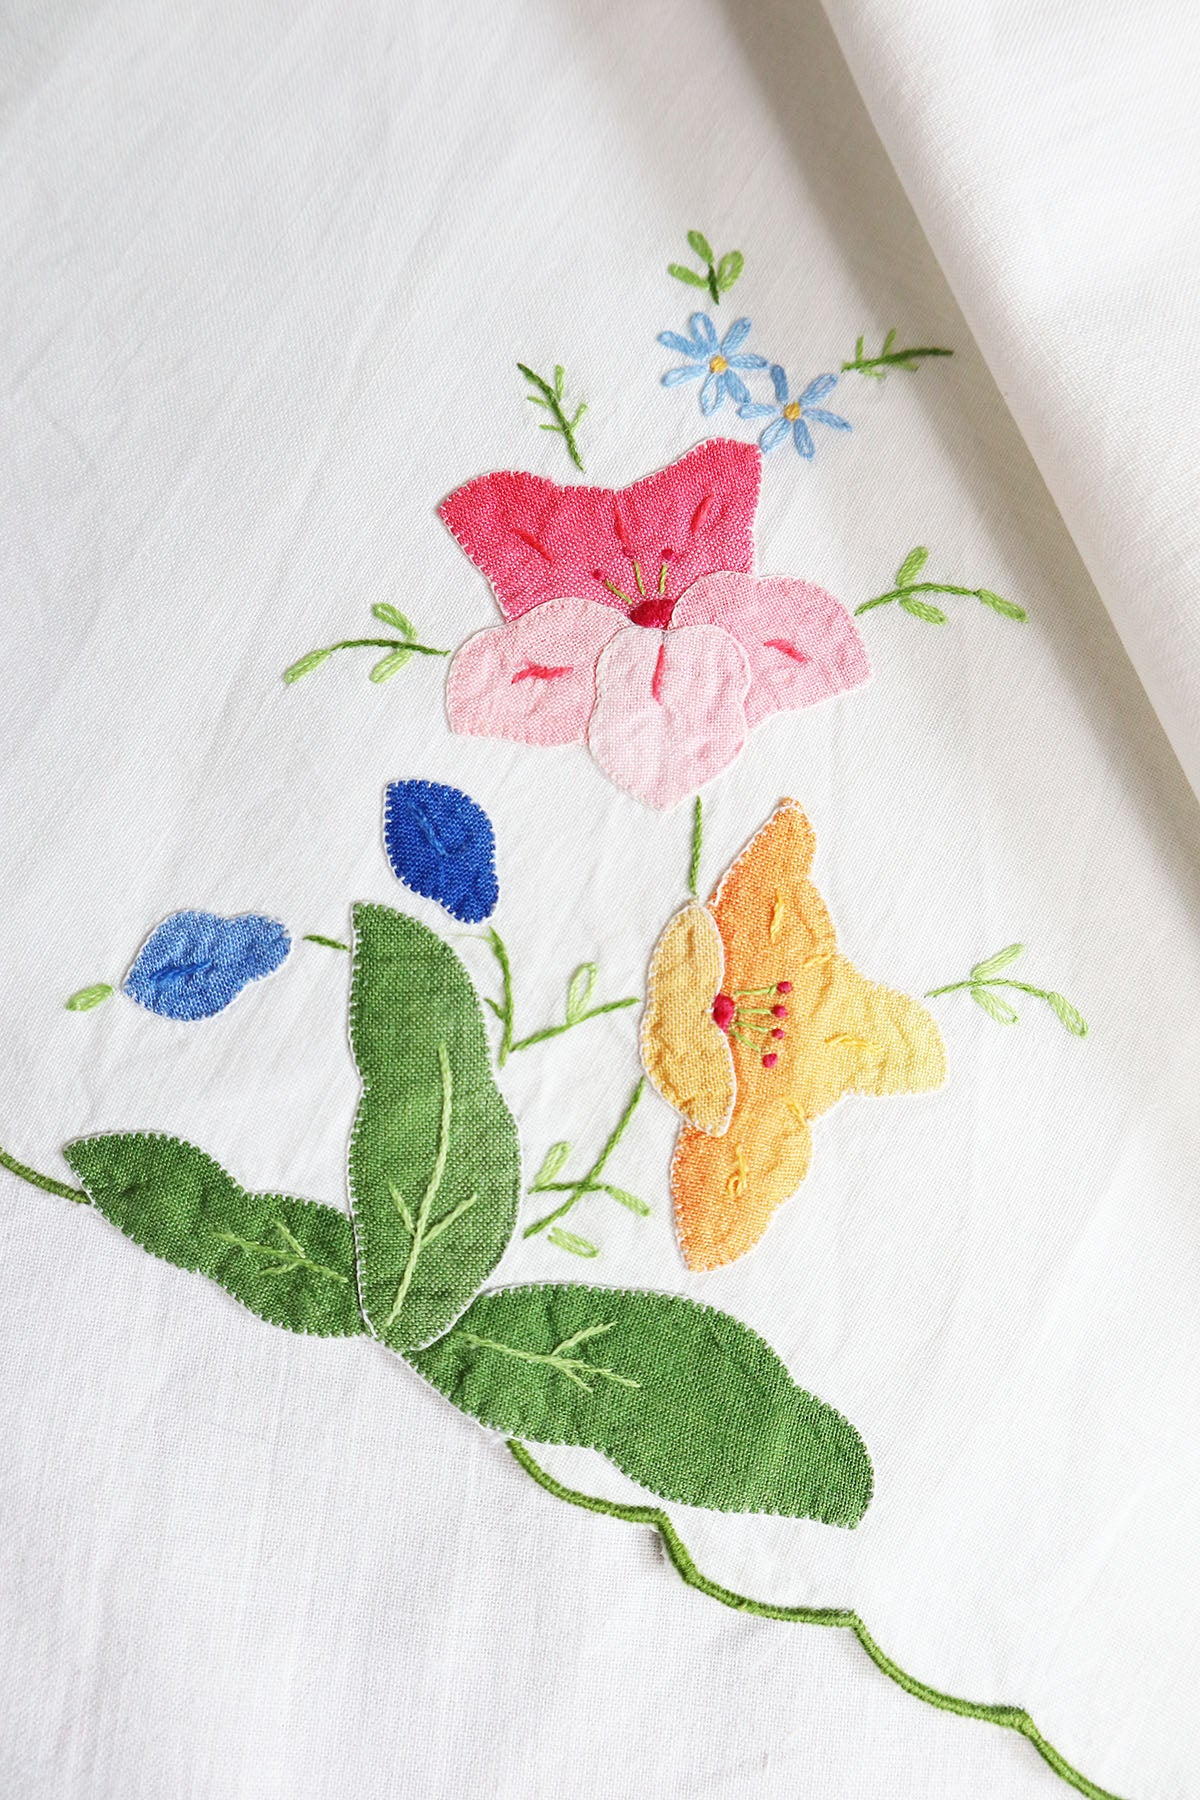 Small Vintage Tablecloth With Flowers